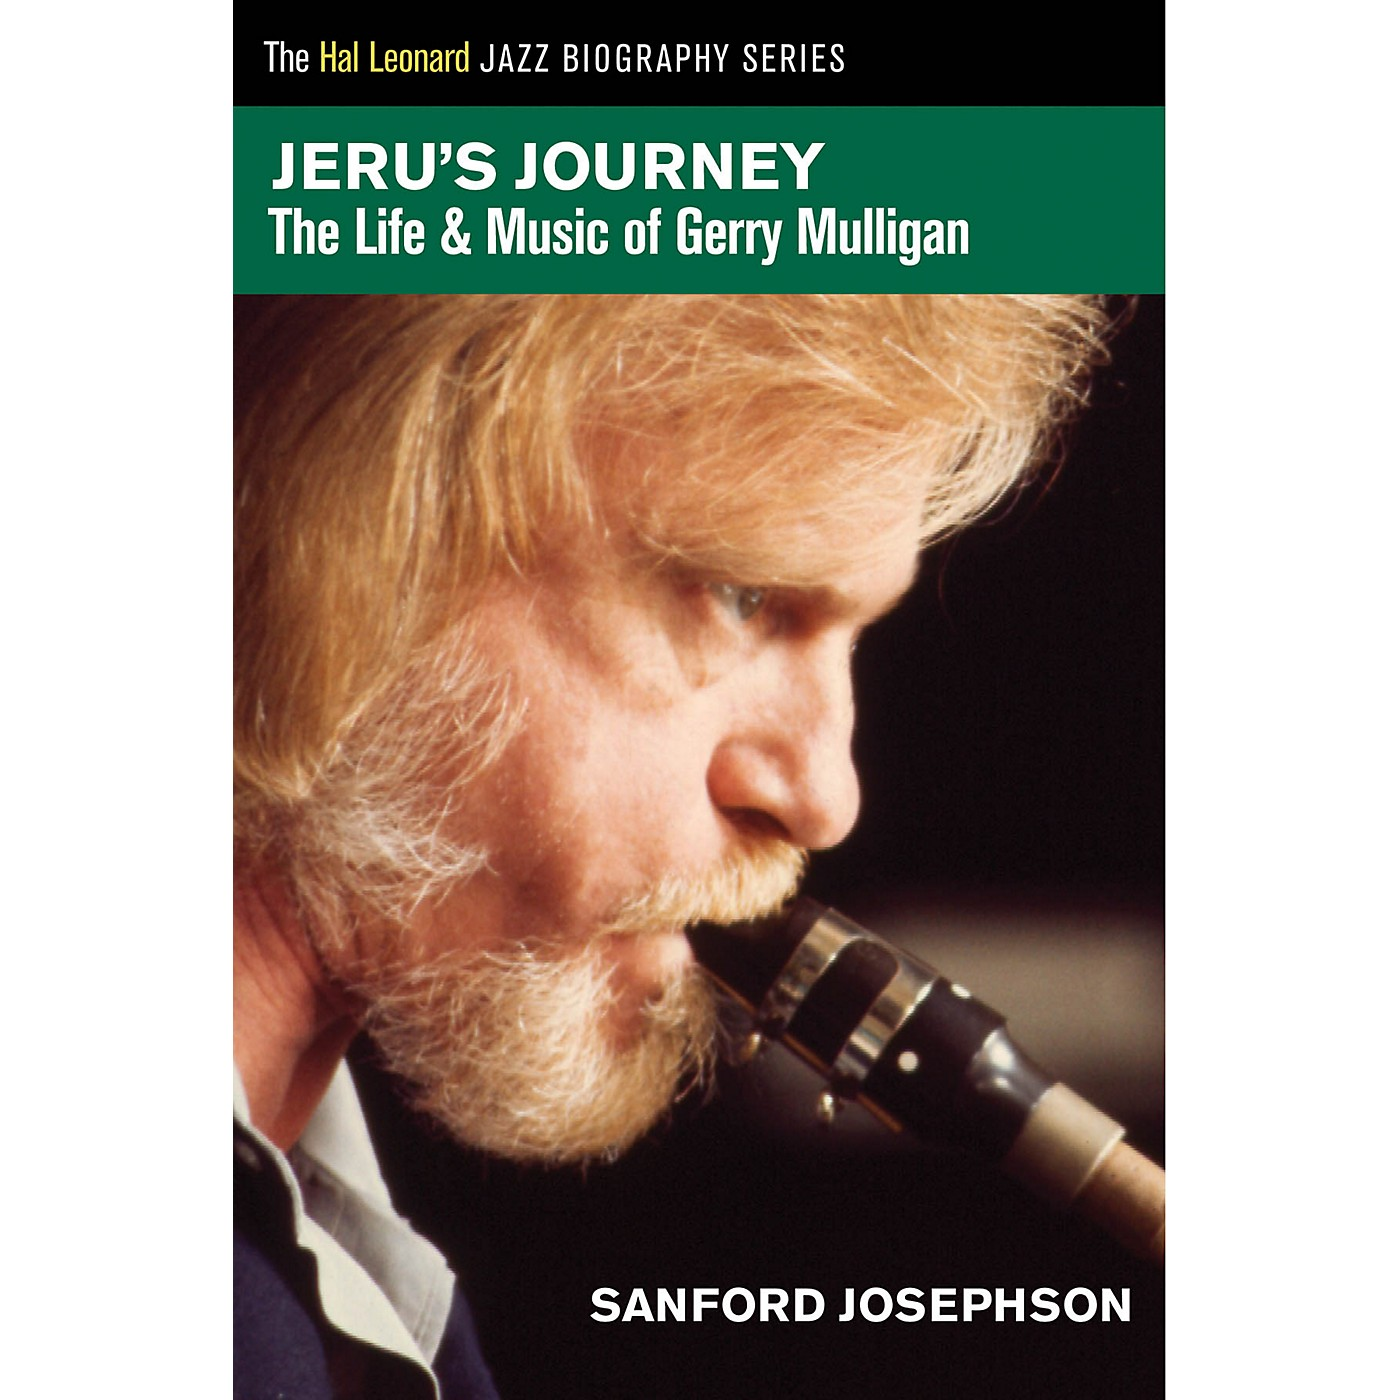 Hal Leonard Jeru's Journey (The Life & Music of Gerry Mulligan) Book Series Softcover Written by Sanford Josephson thumbnail